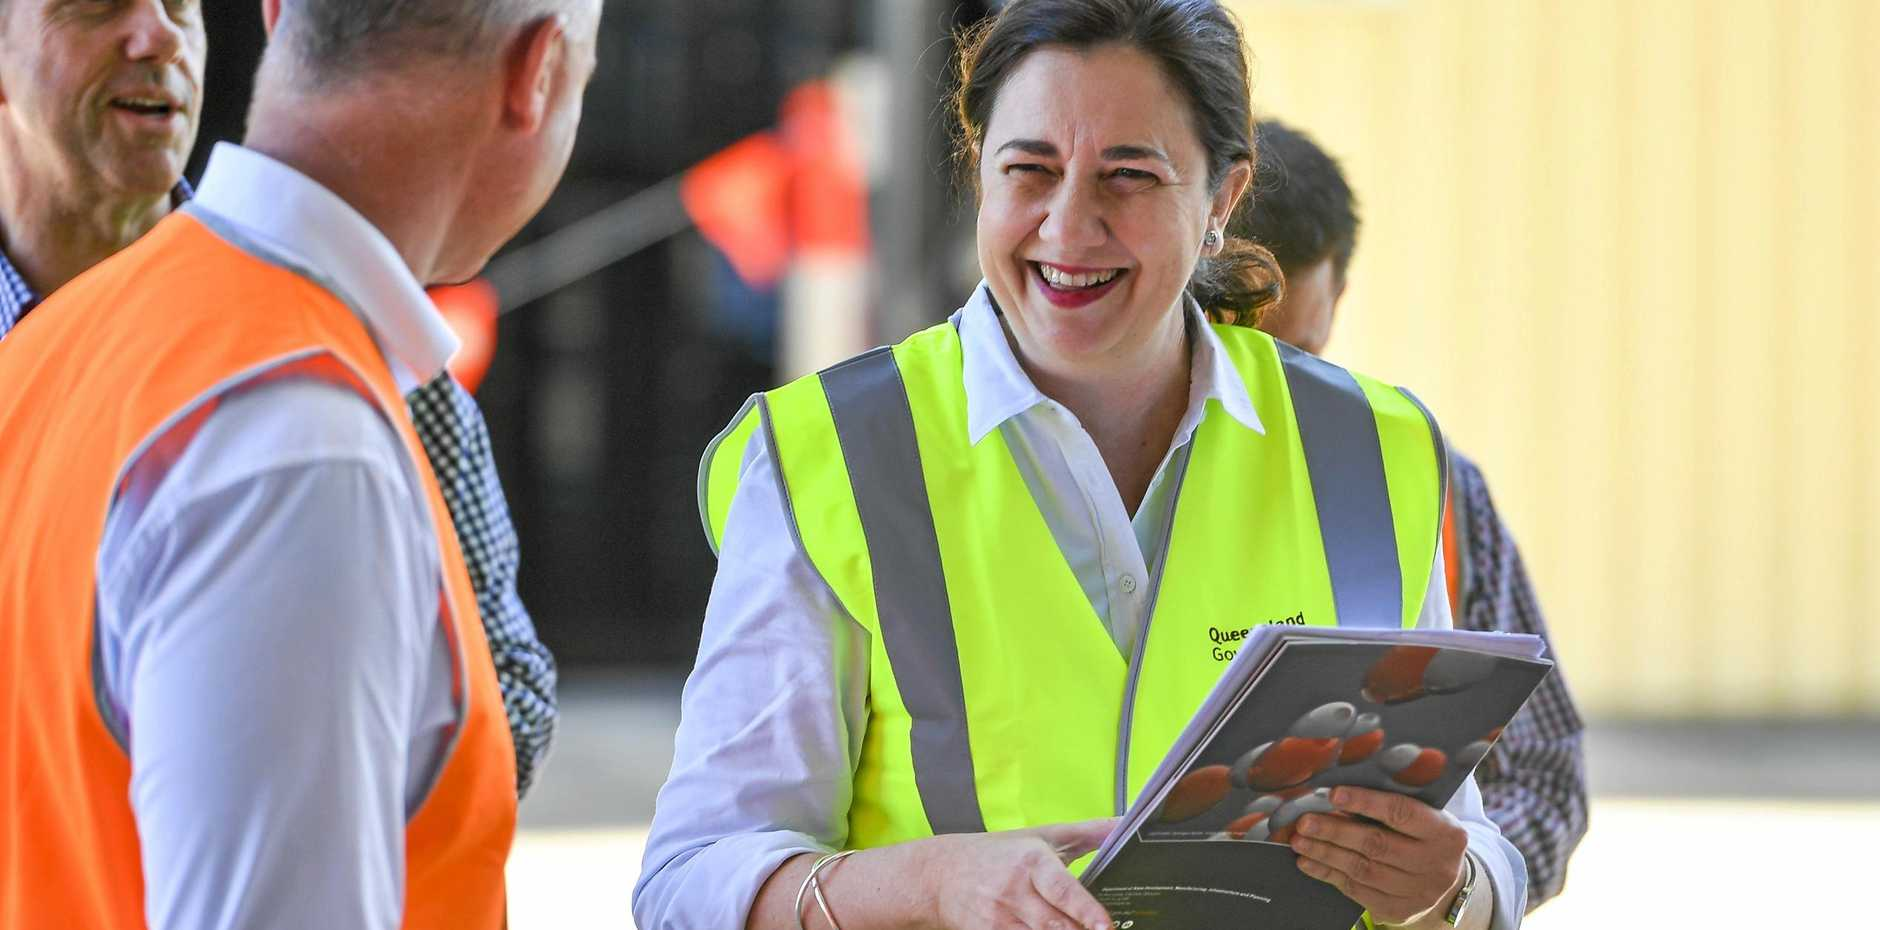 ALL SMILES: Queensland Premier Annastacia Palaszczuk enjoys a lighter moment with Gladstone MP Glenn Butcher and Minister for State Development Cameron Dick at Northern Oil Refinery to announce the Queensland Government's new $19-million Queensland Hydrogen Industry Strategy 2019-2024.